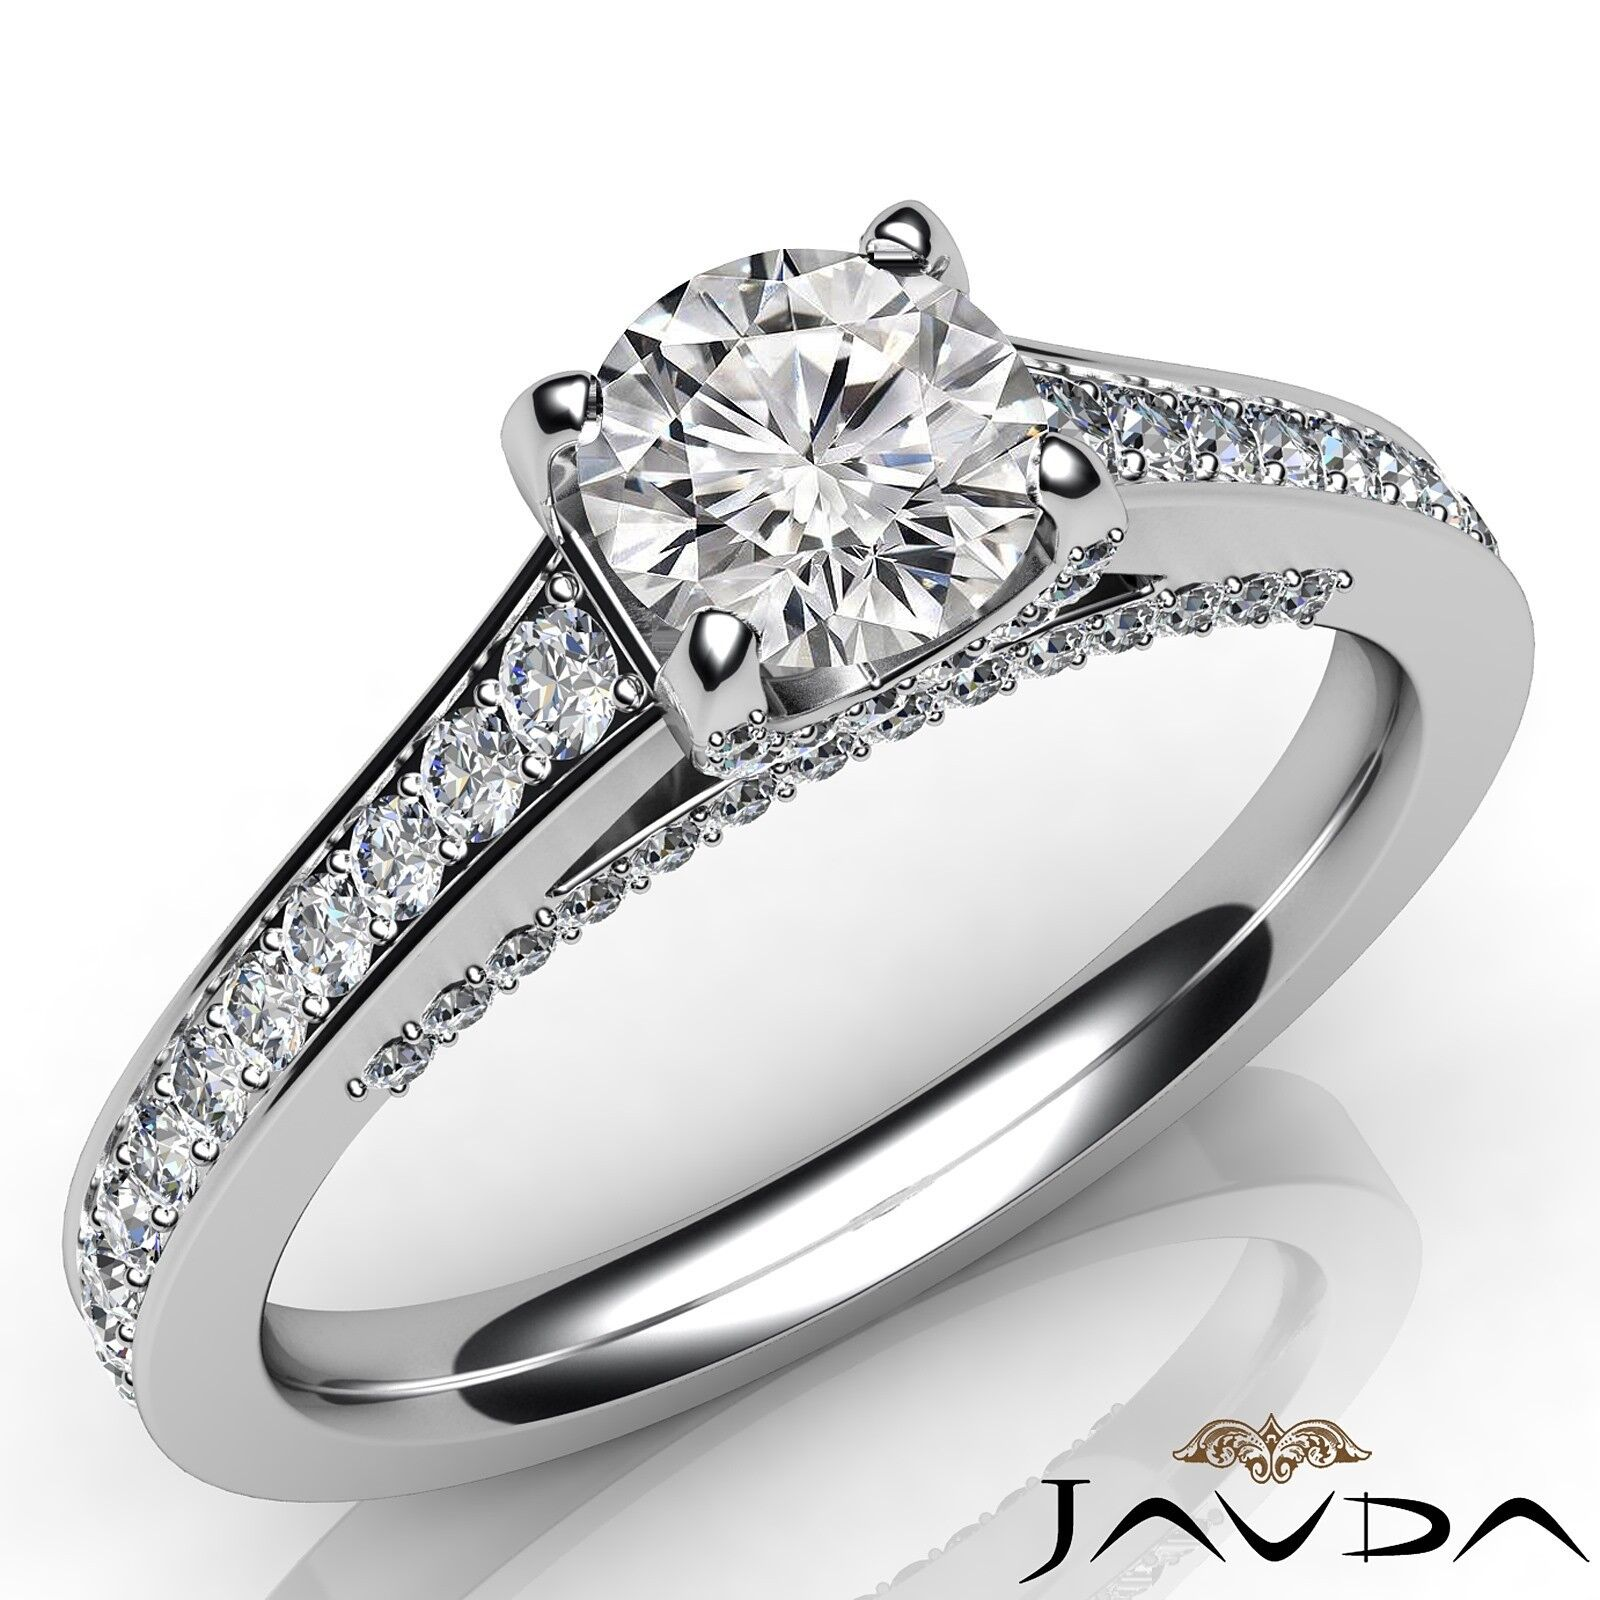 1.35ctw Brilliant Cut Round Diamond Engagement Ring GIA G-VVS2 White Gold Rings